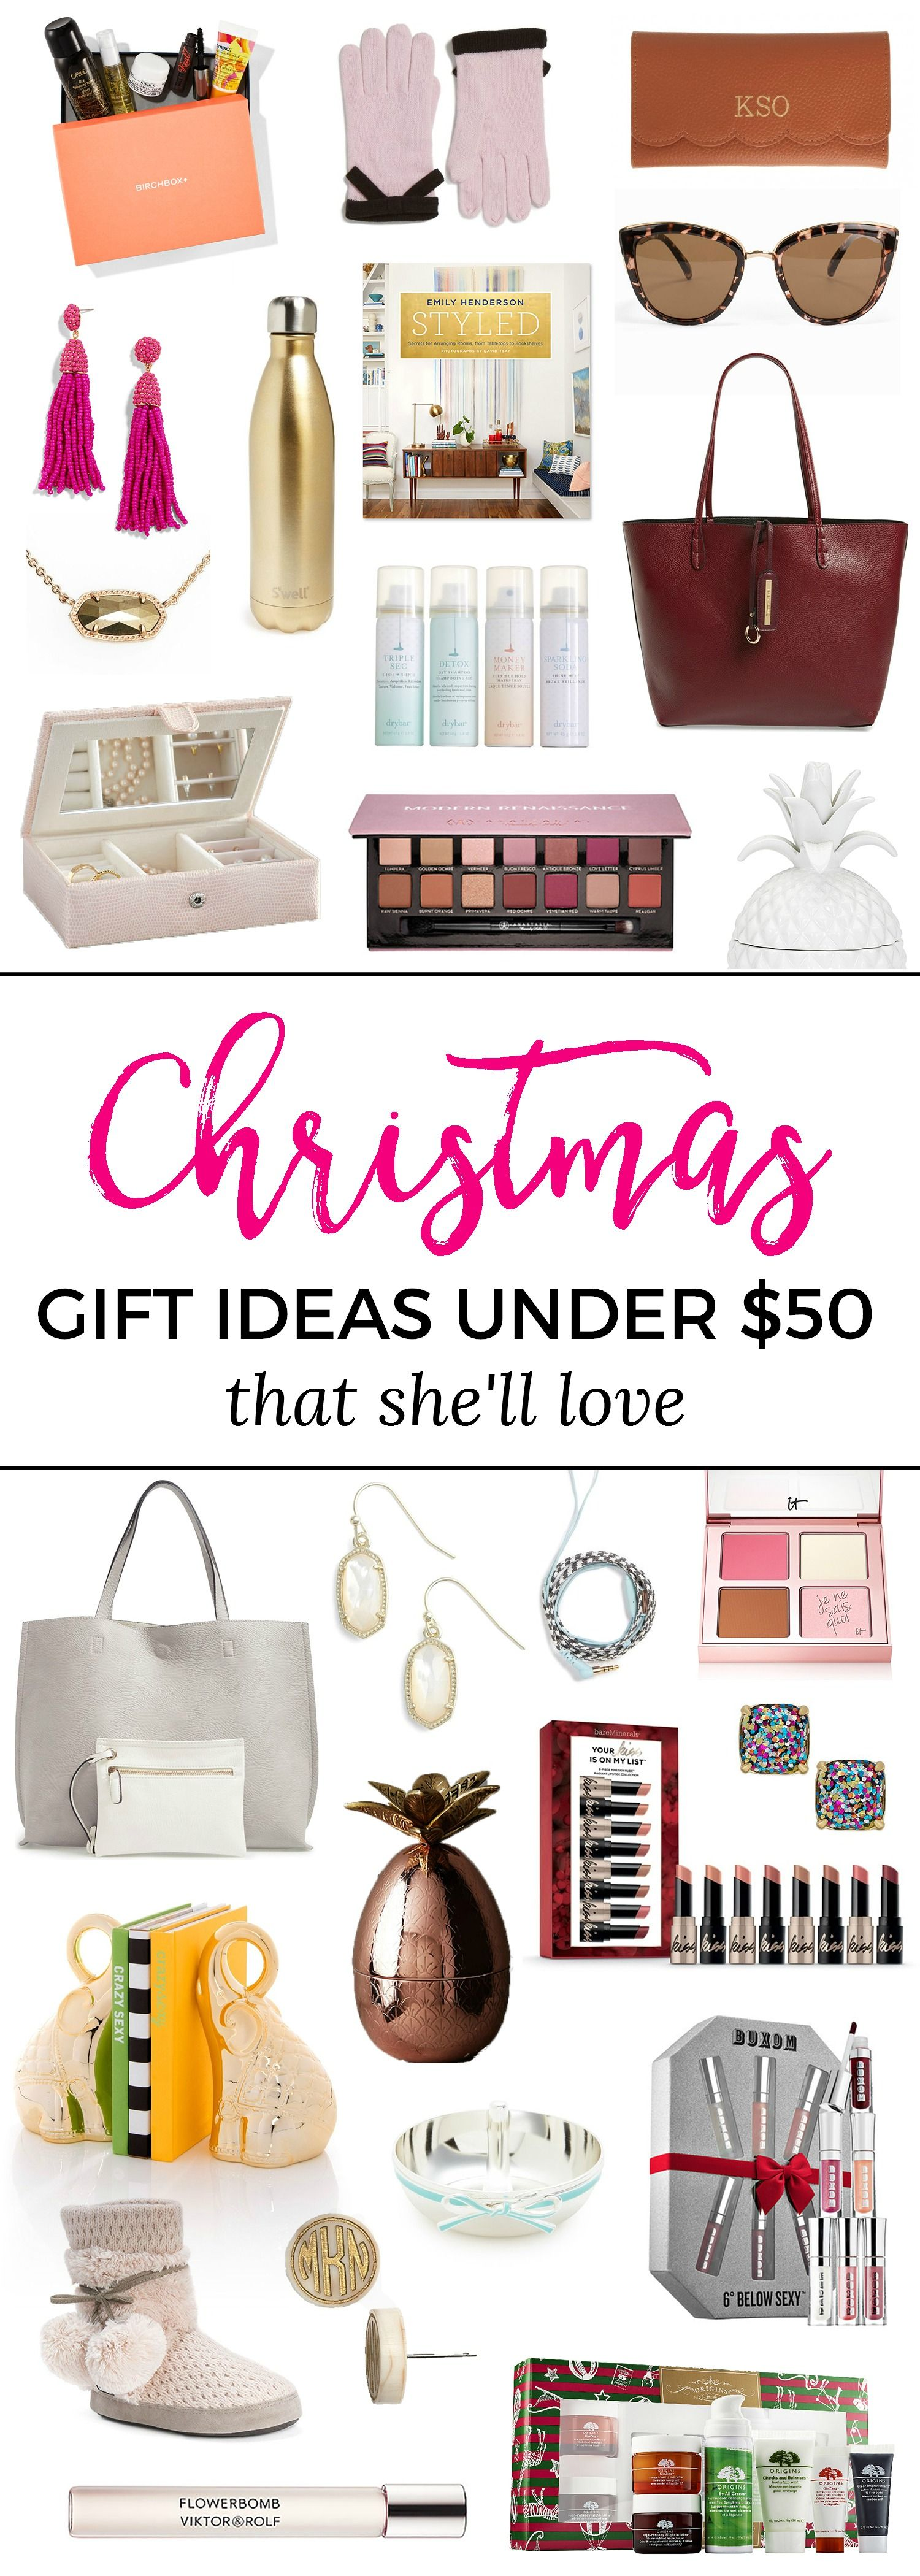 The Best Christmas Gift Ideas for Women under $50 | Ashley brooke ...